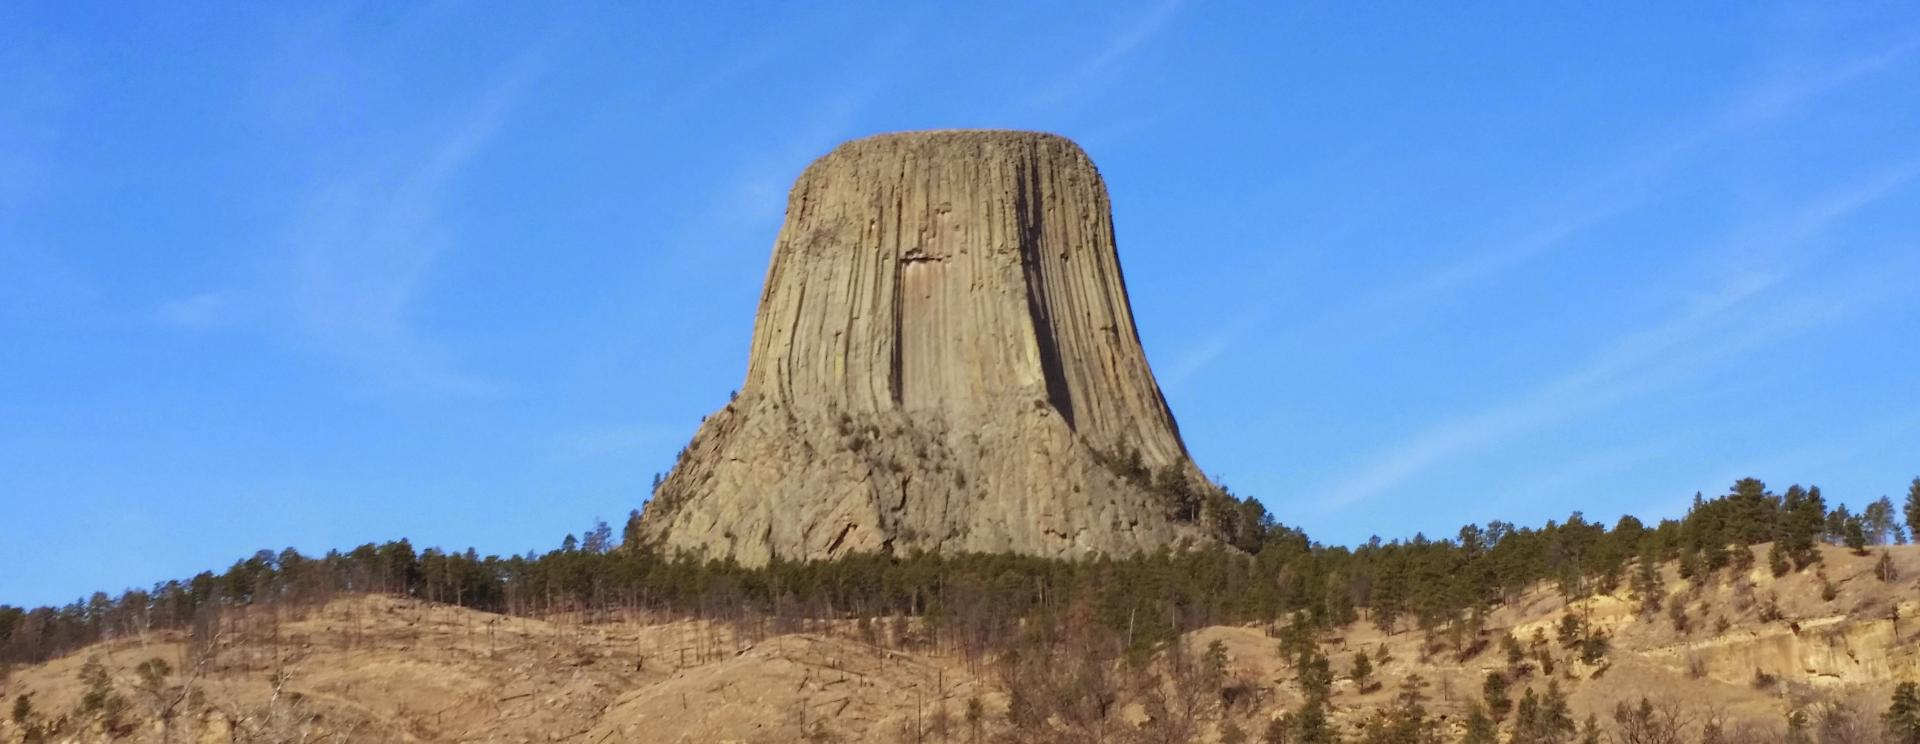 Devils Tower Trading Post & Ice Cream Parlor